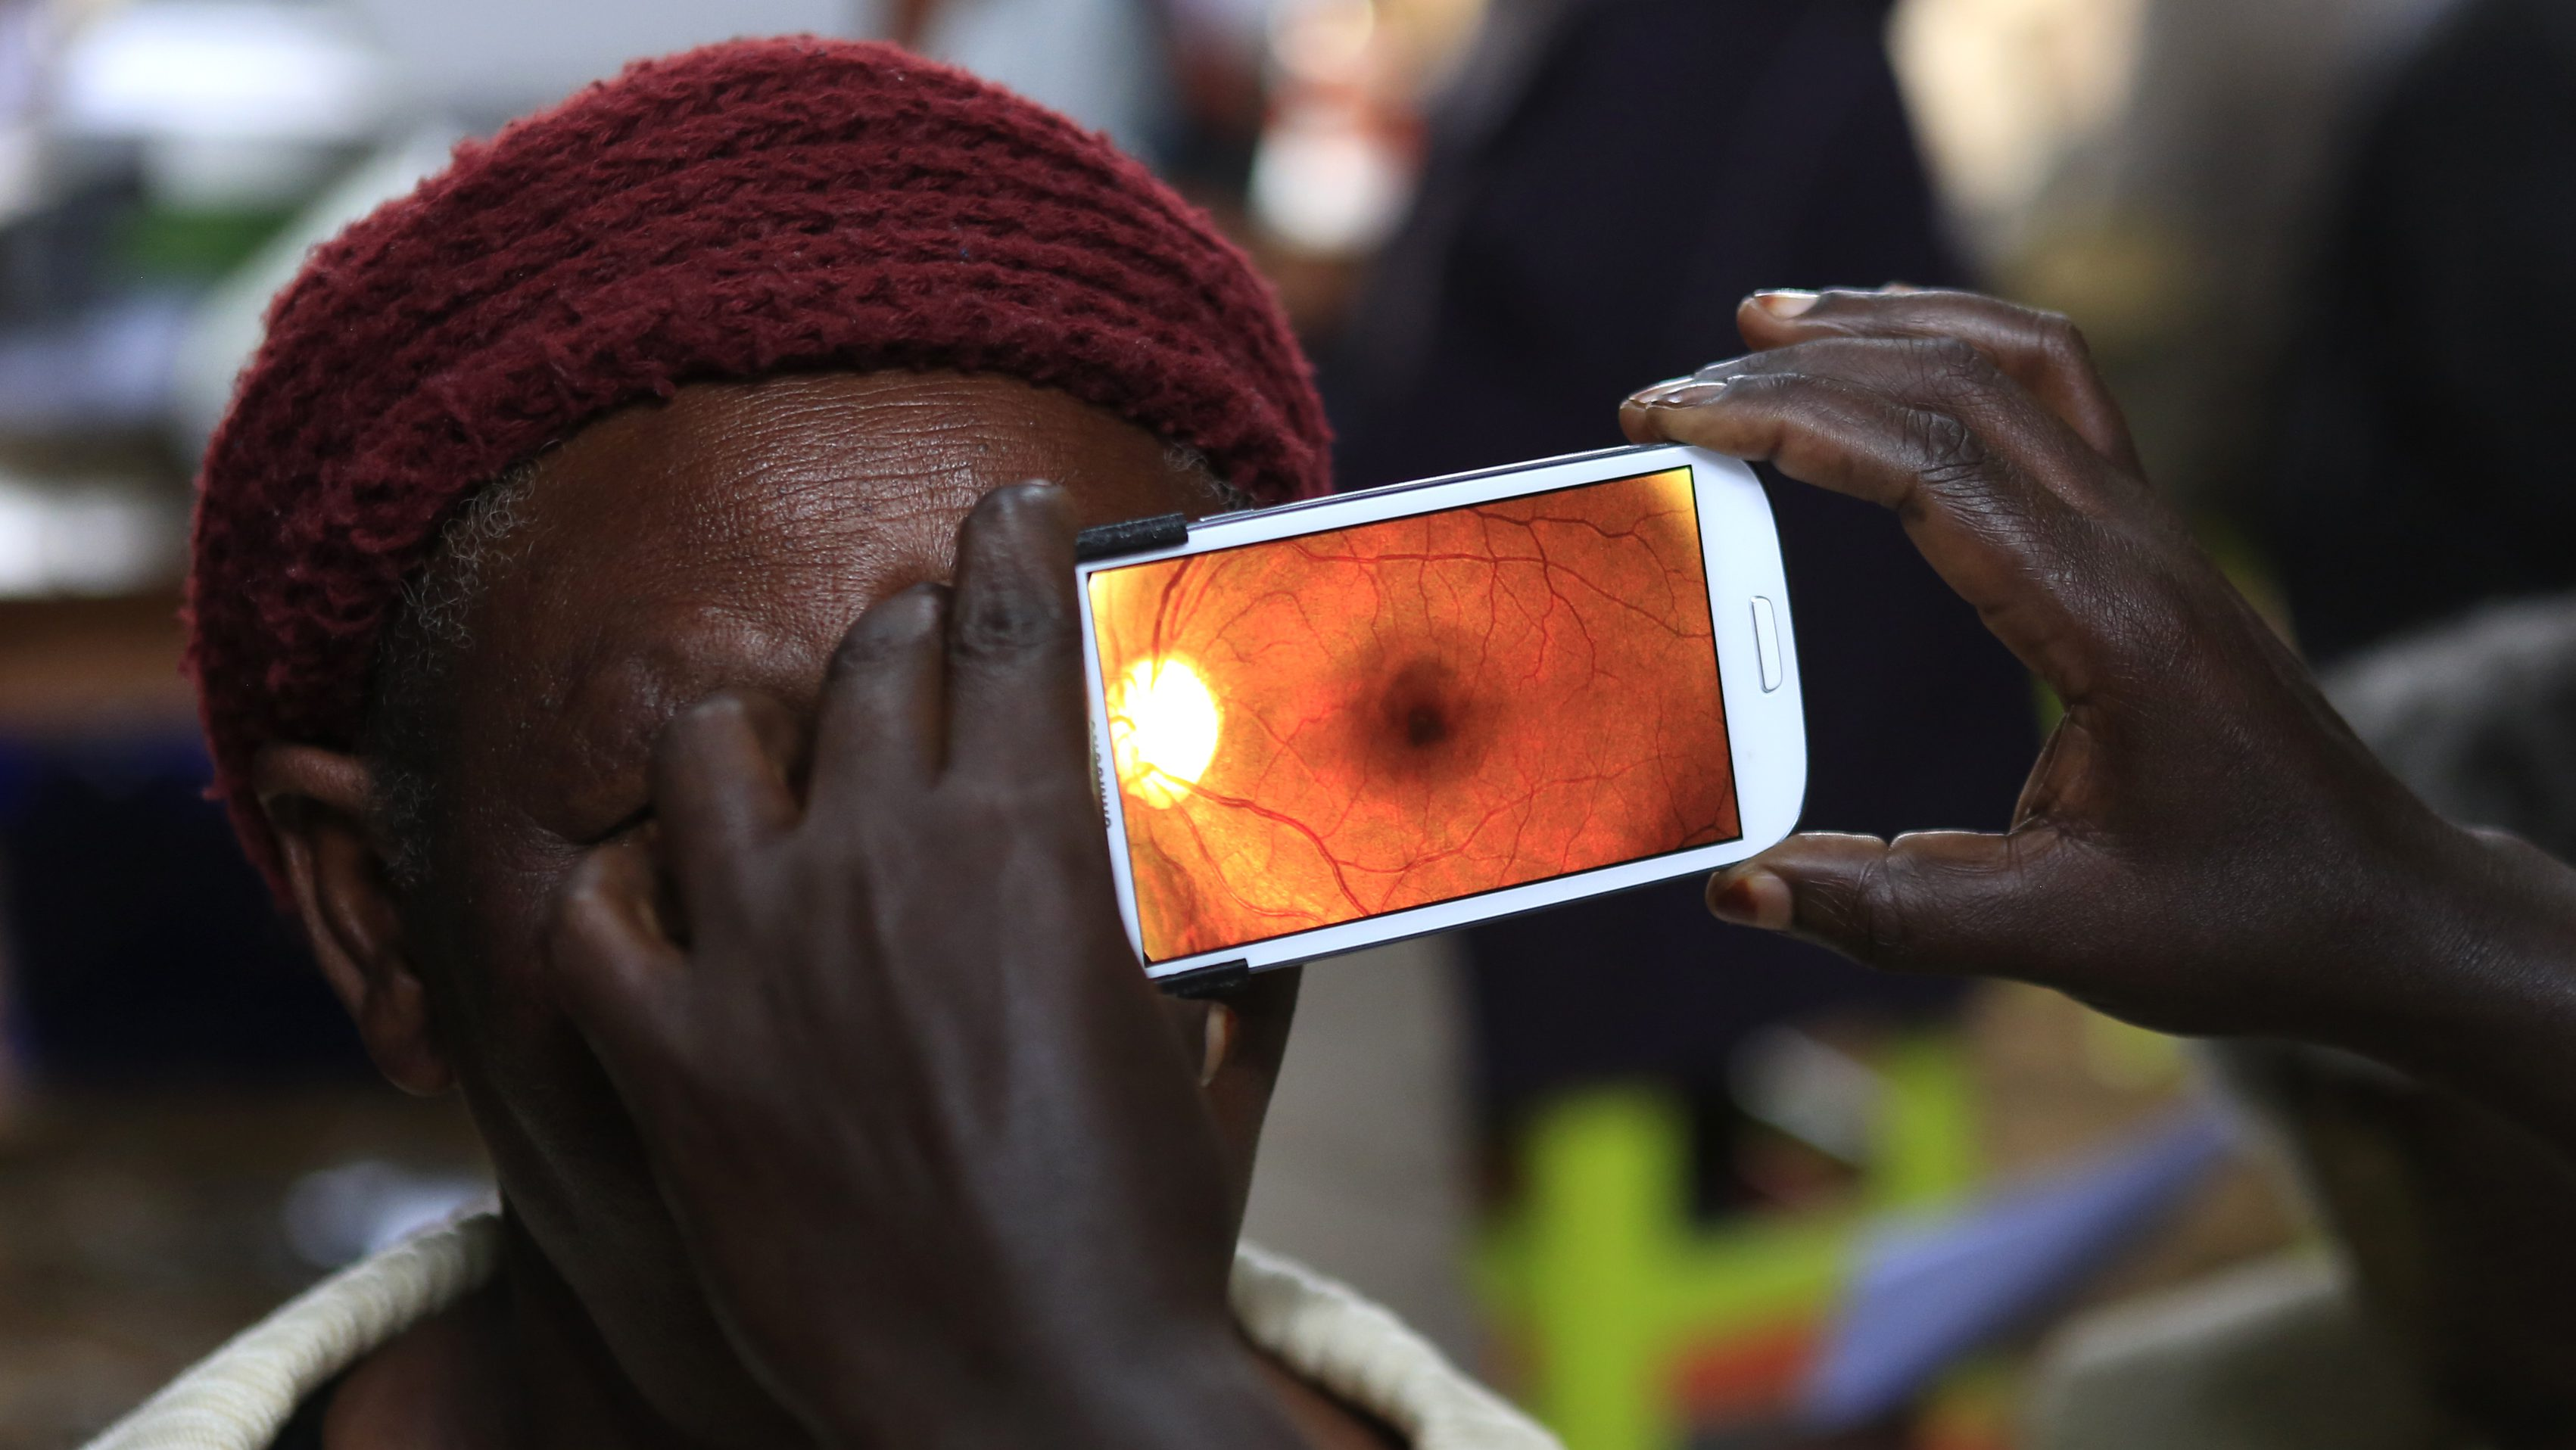 """A woman undergoes an eye examination using of a smartphone at a temporary clinic by International Centre for Eye Health at Olenguruone in the Mau Summit 350km (217 miles) west of Kenya's capital Nairobi, October 29, 2013. The organisation is running clinics for 5000 eye patients using a new application """"Peek Vision"""" that enables doctors to give patients a full eye examination using smartphones. The phone diagnoses and conducts cataract scans, basic eye tests, and uses the phone's flash to illuminate the back of the eye for signs of disease. It also sends all recorded data of a patient along with their location to a doctor for analysis. REUTERS/Noor Khamis (KENYA - Tags: HEALTH SOCIETY SCIENCE TECHNOLOGY) - RTX14SX6"""